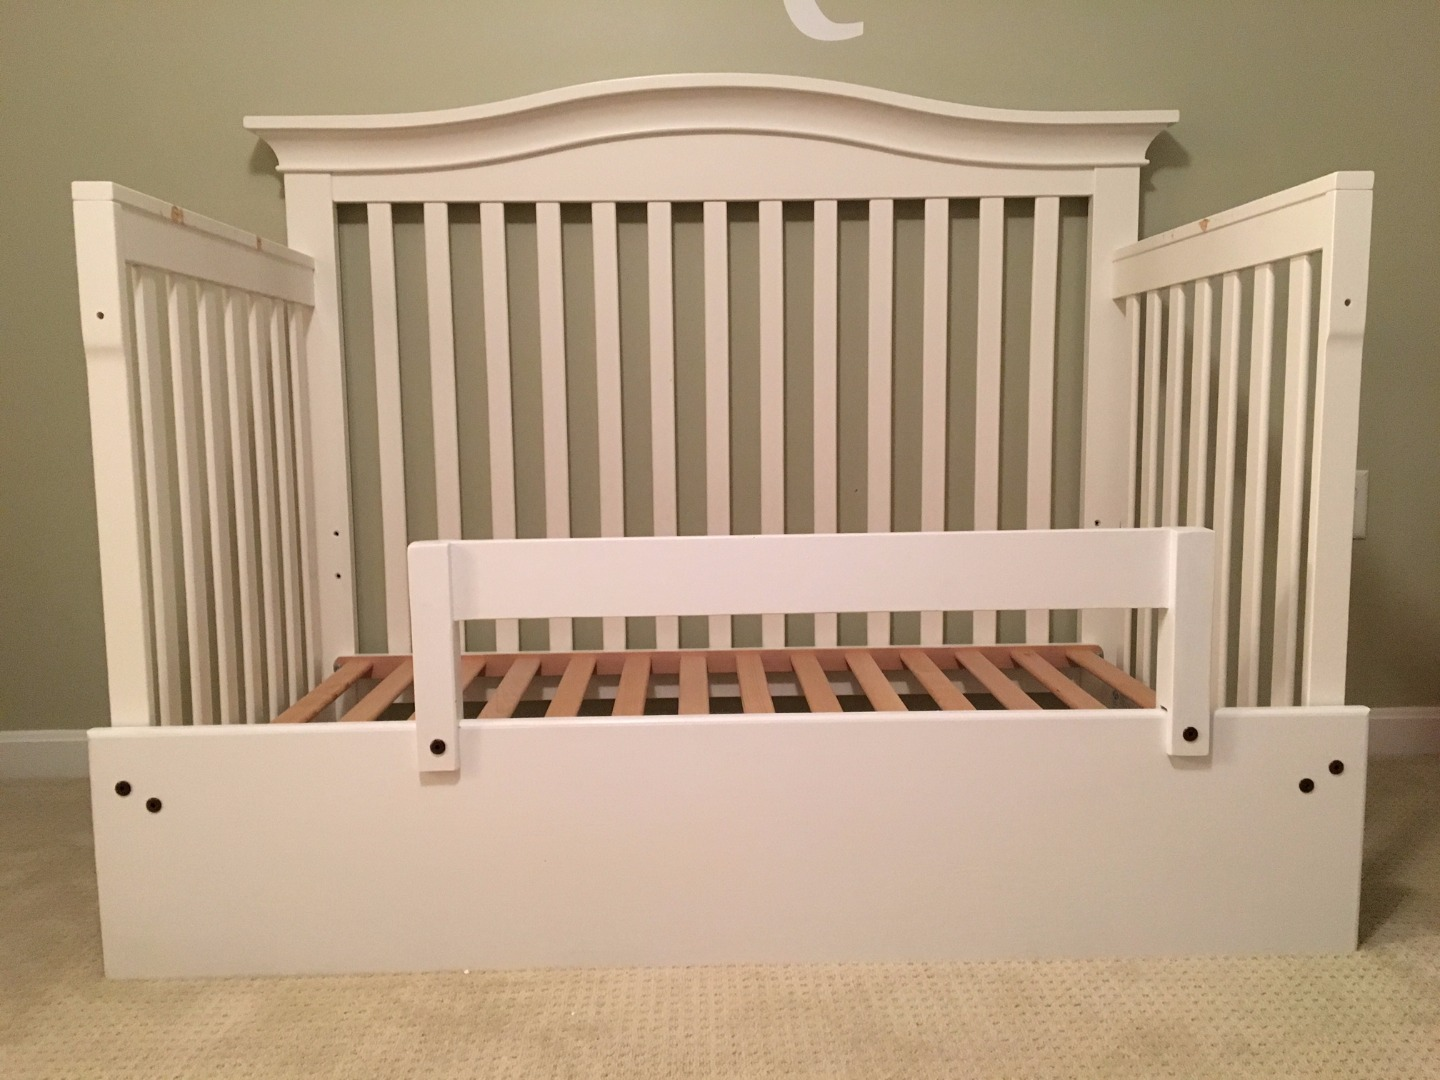 Crib Into A Toddler Bed Hack 8 Steps With Pictures Instructables